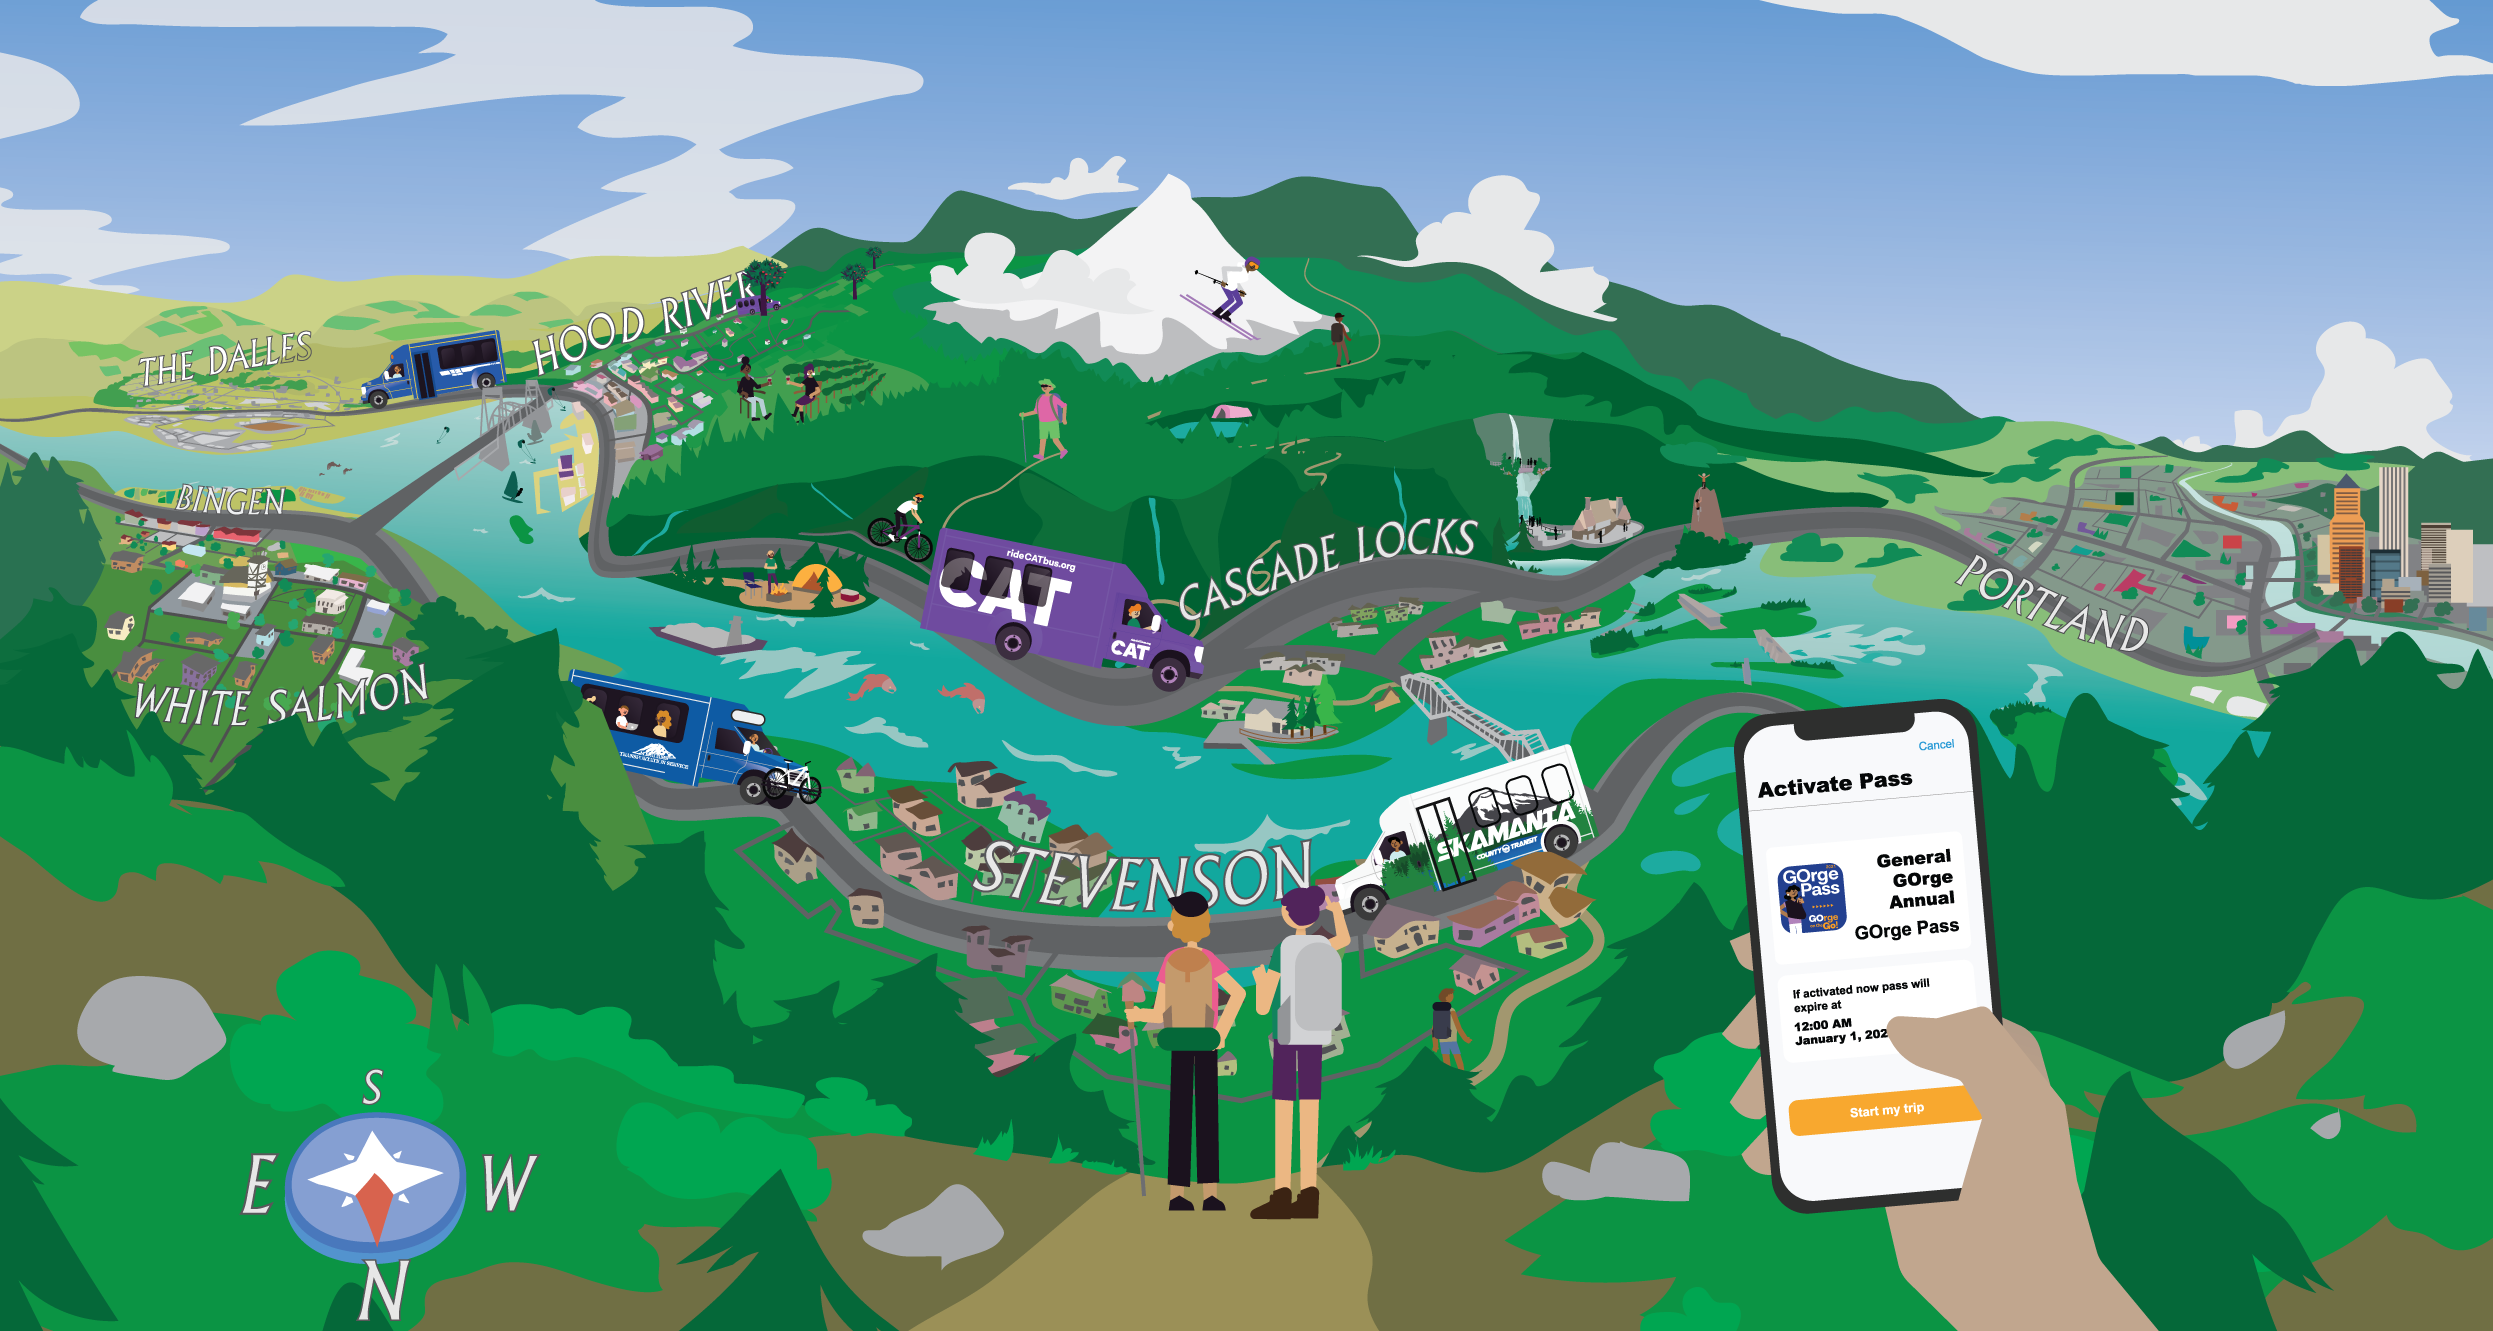 Cartoon illustration scene of Mt Hood and the Columbia River with little groups of houses representing the different towns of Portland, Cascade Locks, Hood River, White Salmon and Stevenson. In the forefront we see the backs of two cartoon character hikers taking in the whole scene. The sky is blue and the hills are different colors of green. This scene also has a picture of a hand holding a phone with a screen of the Gorge Pass. And it include four different cartoon buses - one for each of the transit services in the Gorge.